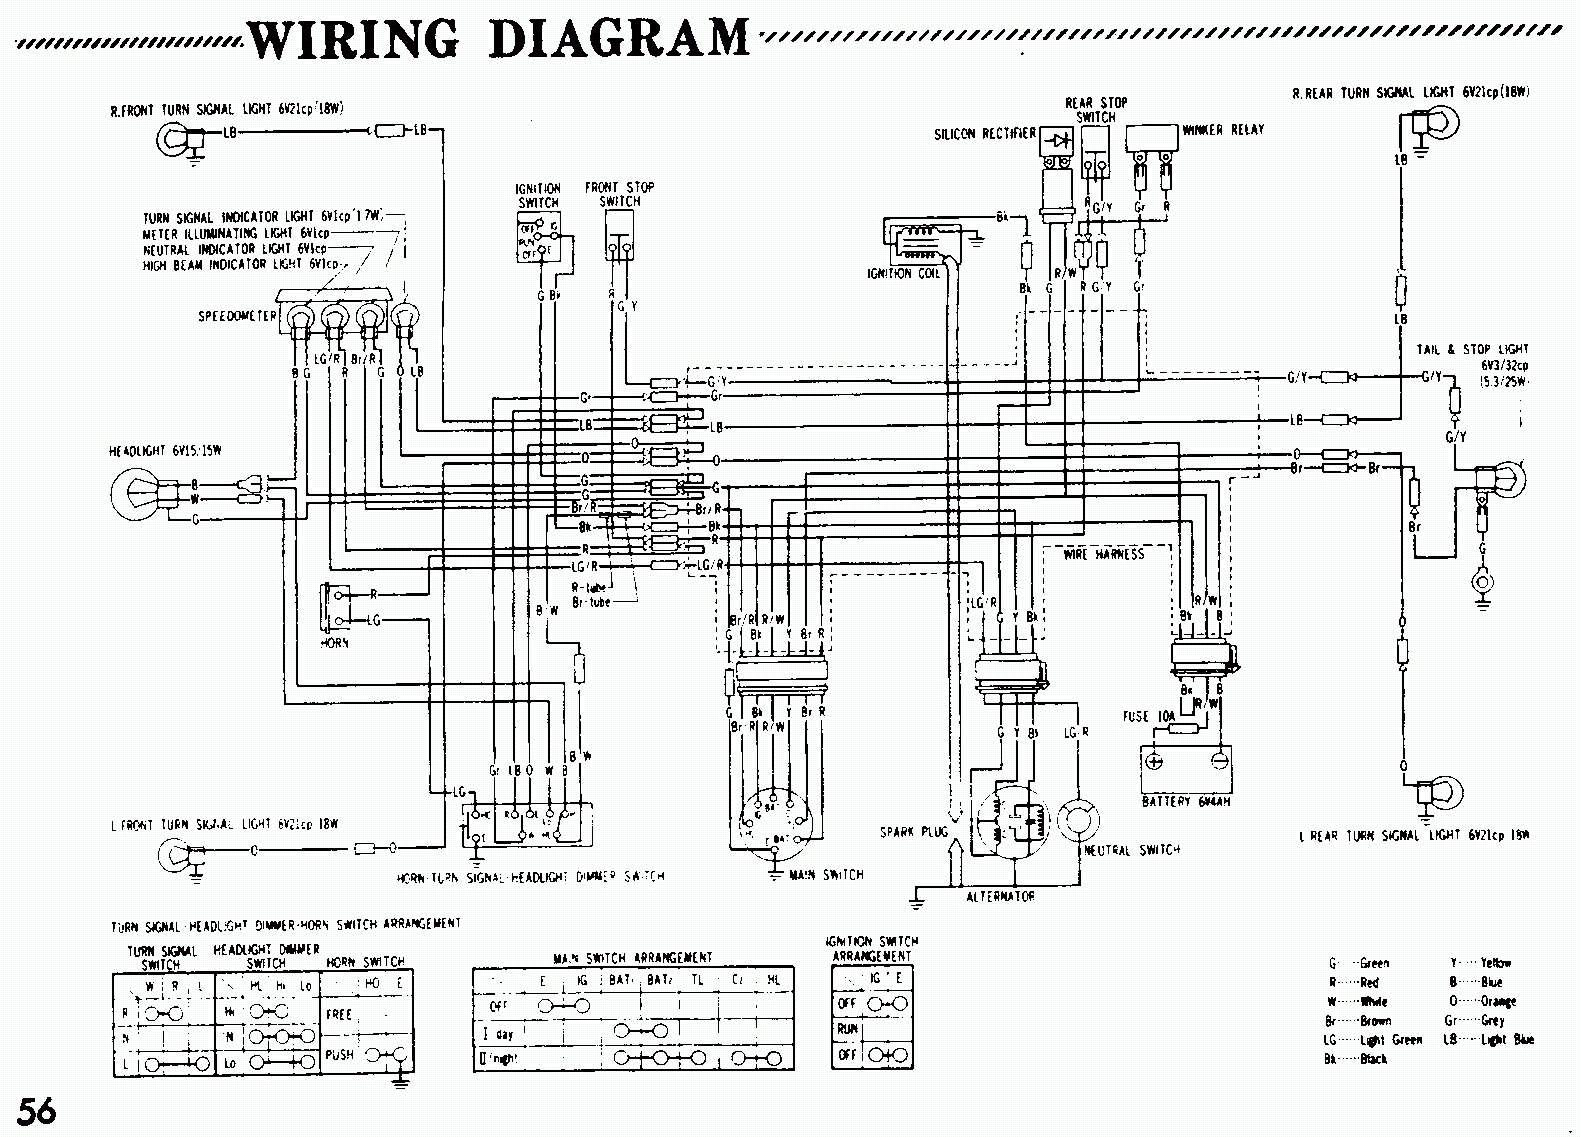 1987 ford mustang engine wiring diagram monkey bike wiring diagram | wiring library